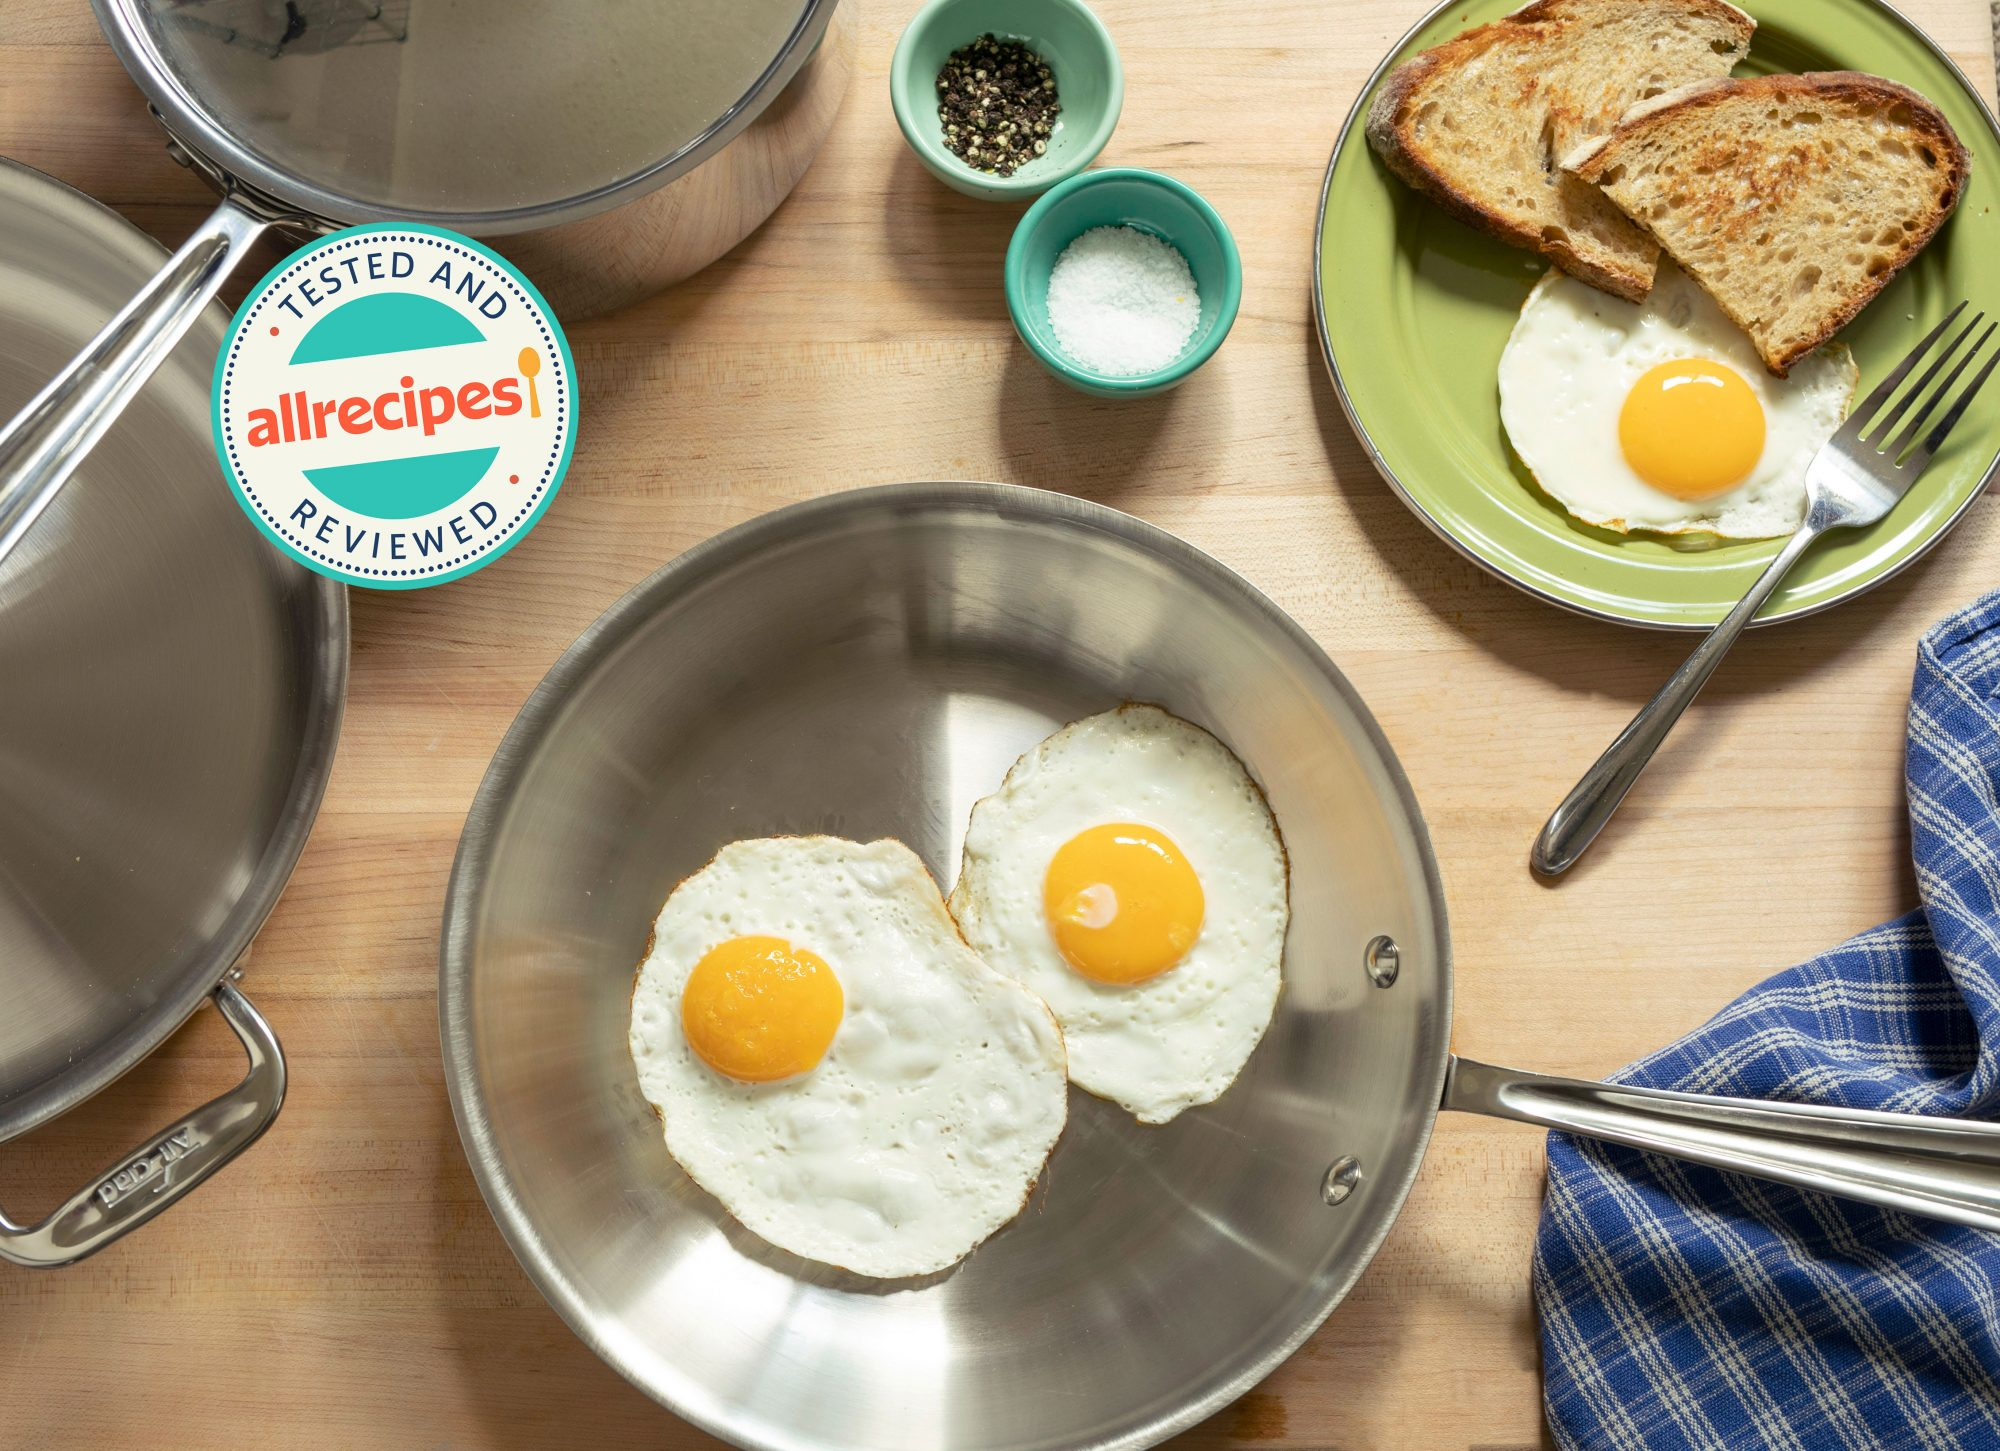 stainless steel cookware with fried eggs